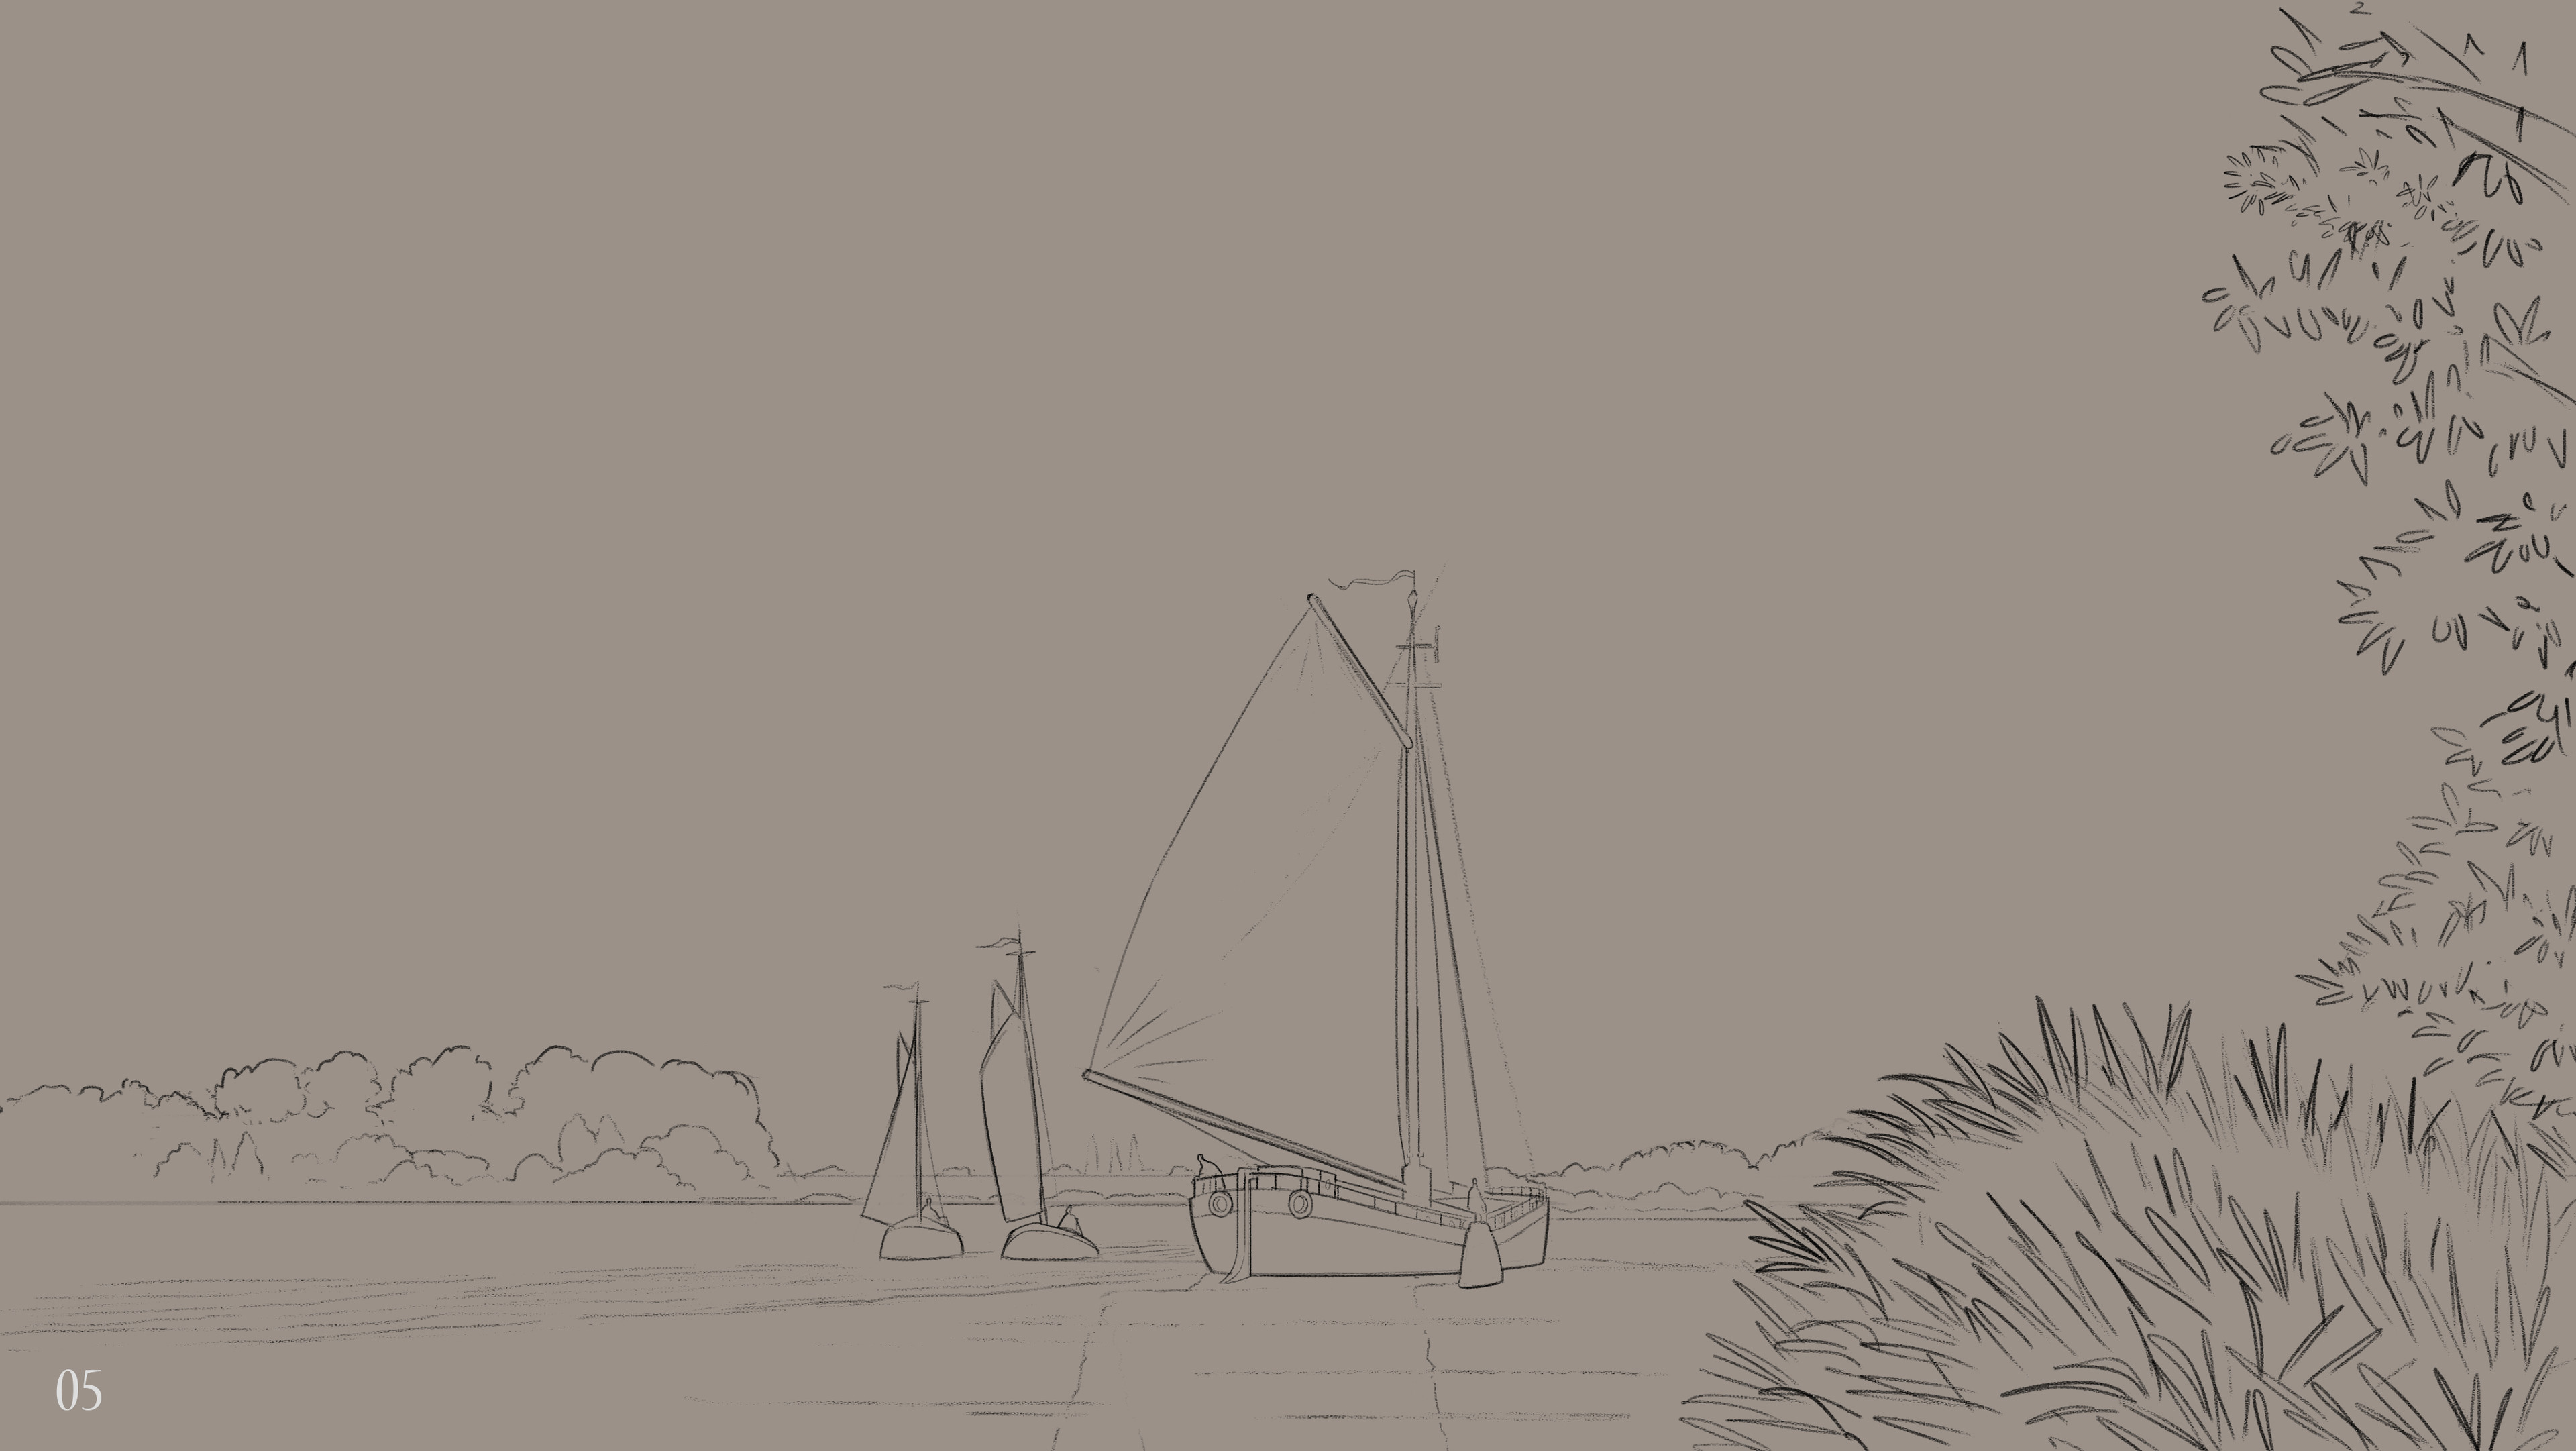 Day 5 - Sailing downstream together